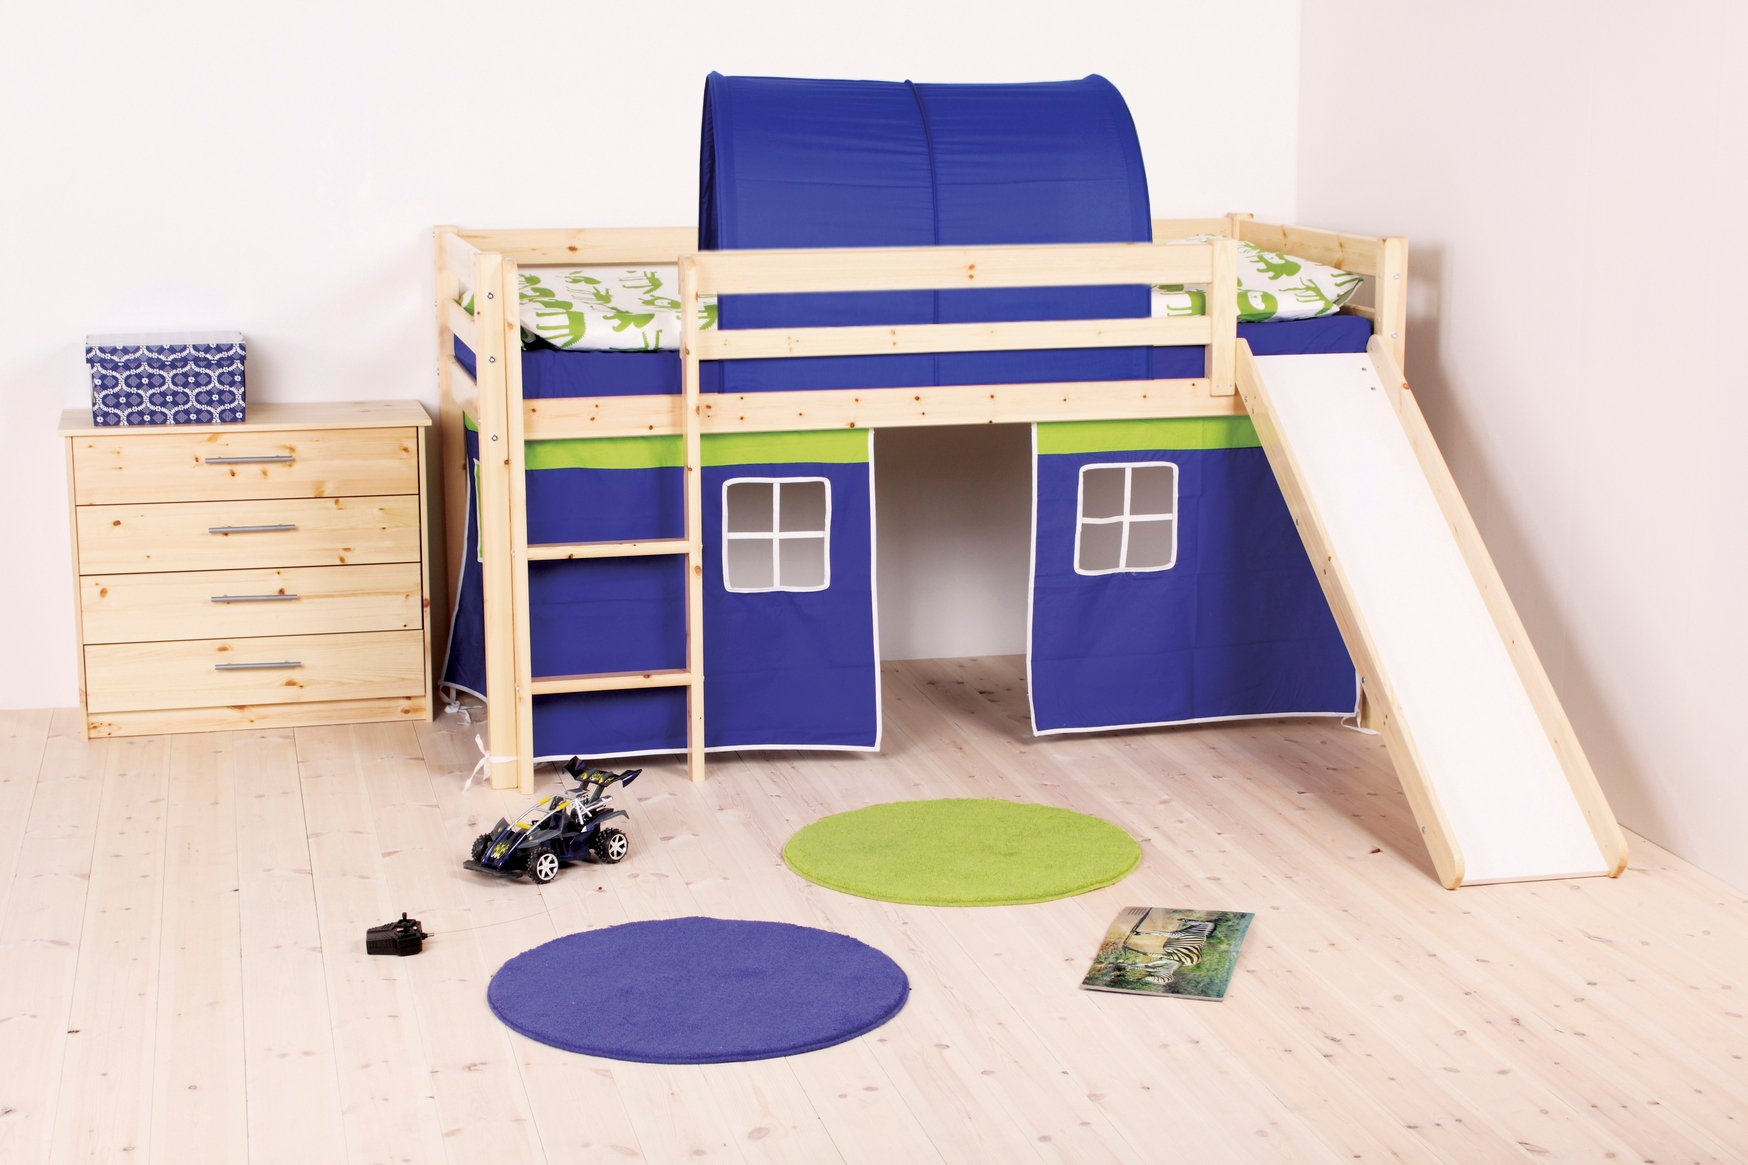 Thuka Kid's Castle Loft Bed With Slide & Bottom Playhouse – With Blue/Green Curtains And Cave– including Safety Guard Rails & Ladder – Ideal Kid's Furniture Set